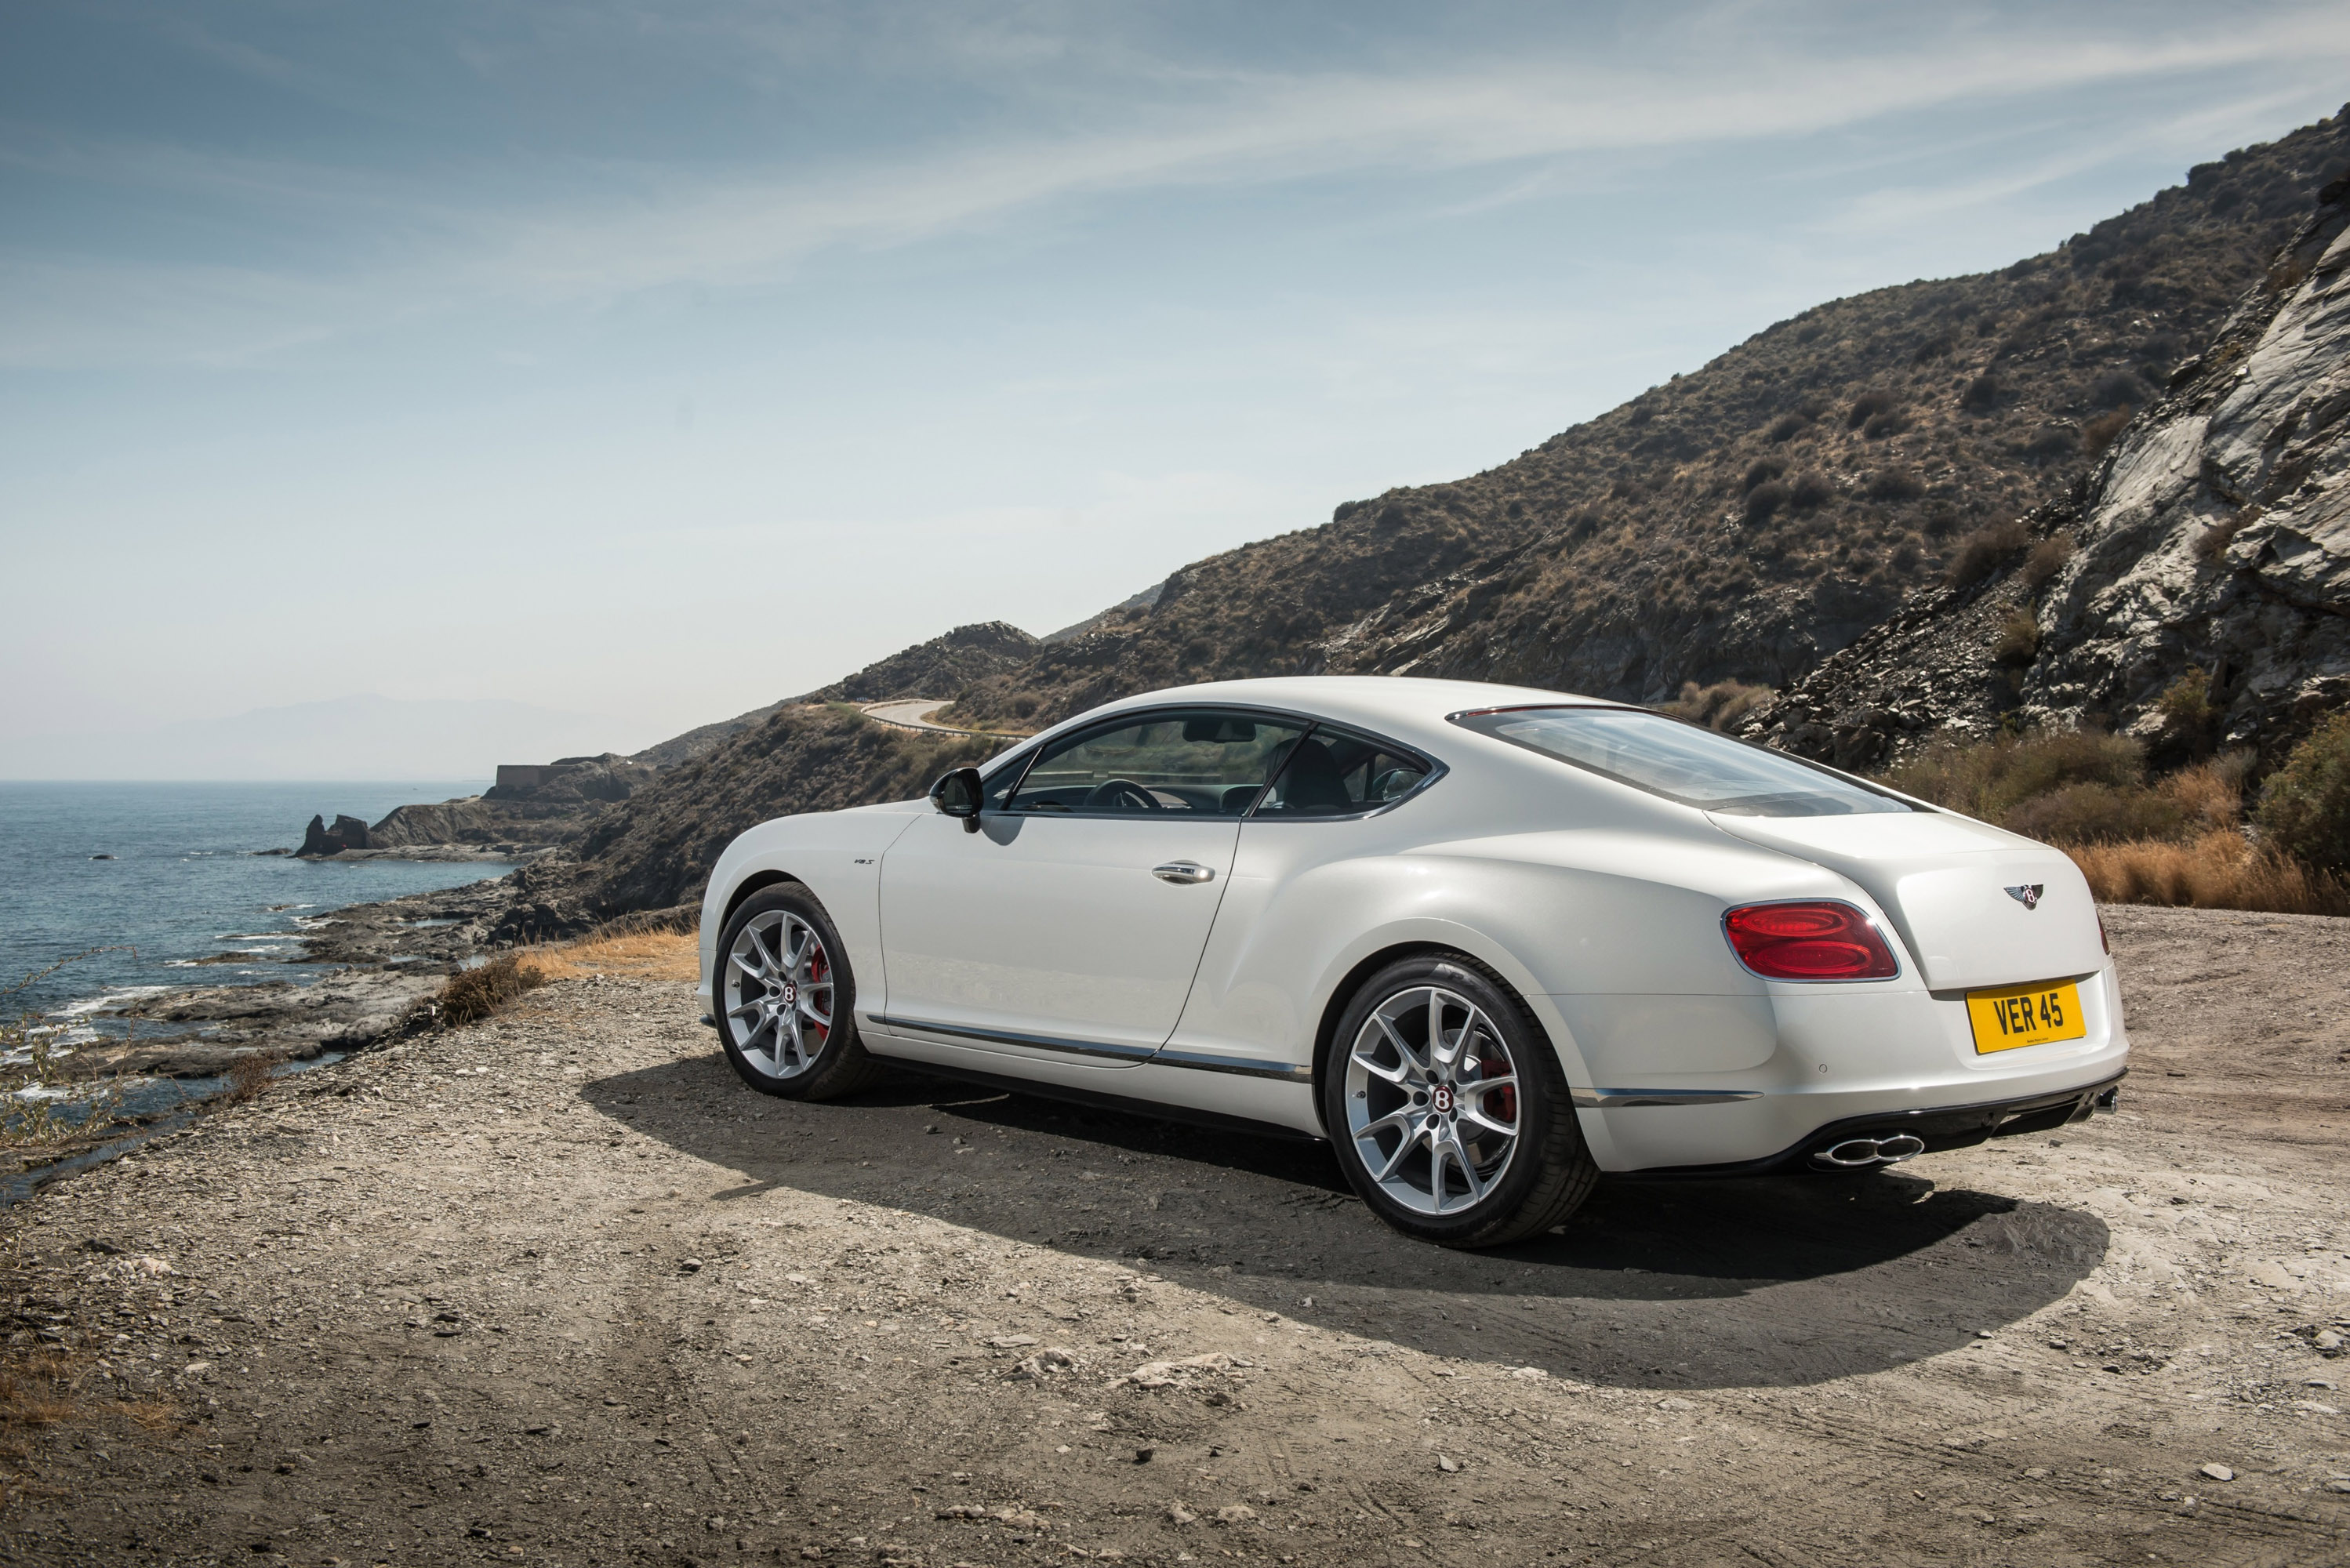 2013 Bentley Continental GT V8 S - Picture 88750